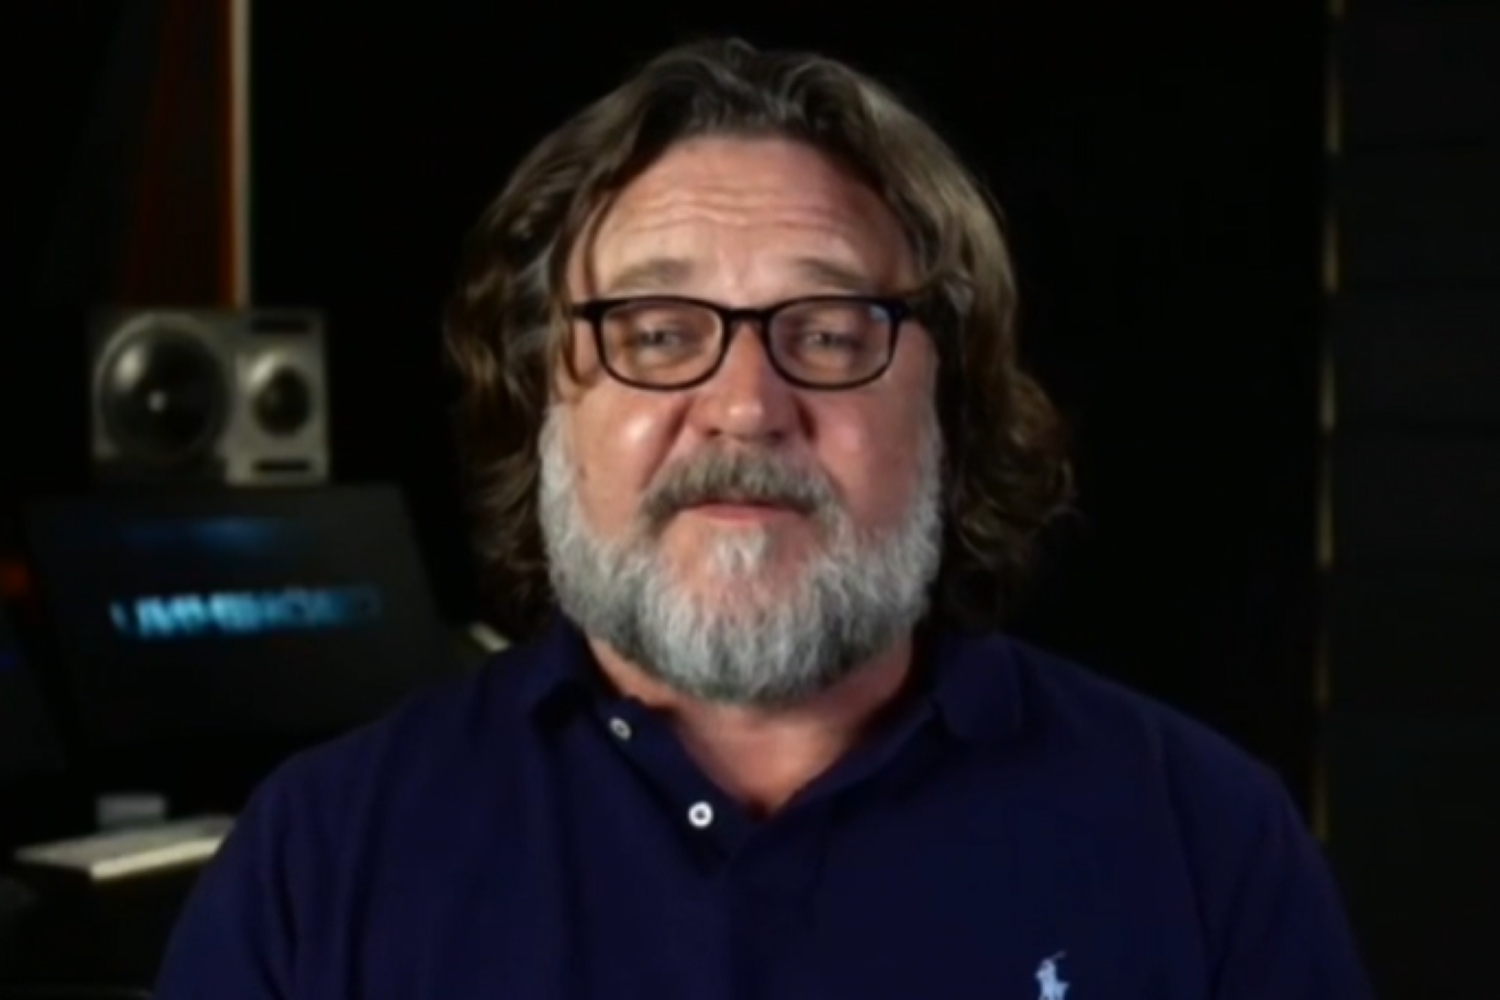 This Morning viewers shocked by Russell Crowe's appearance